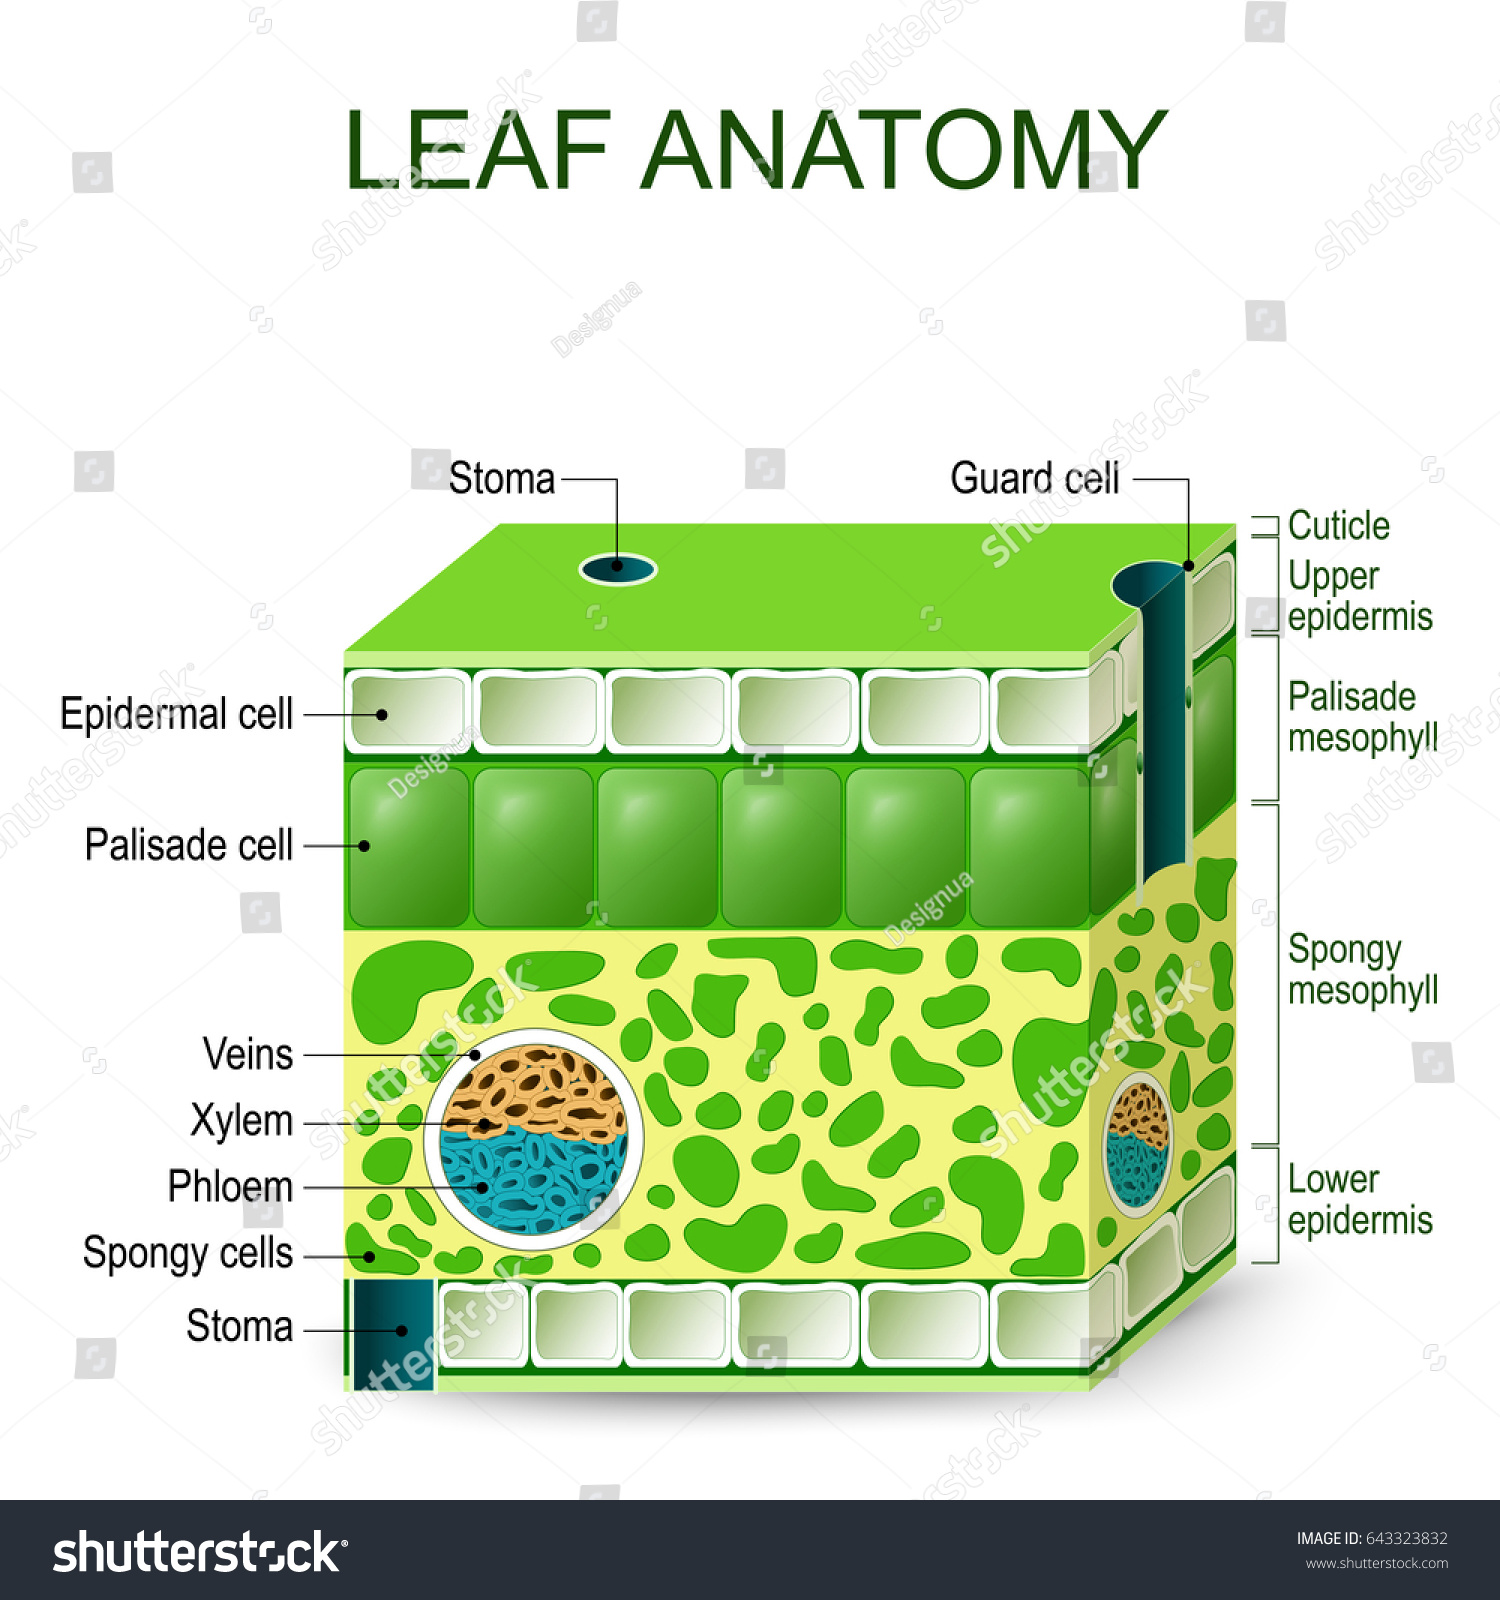 structure of stomata with diagram visio 2013 uml component leaf anatomy on white background stock